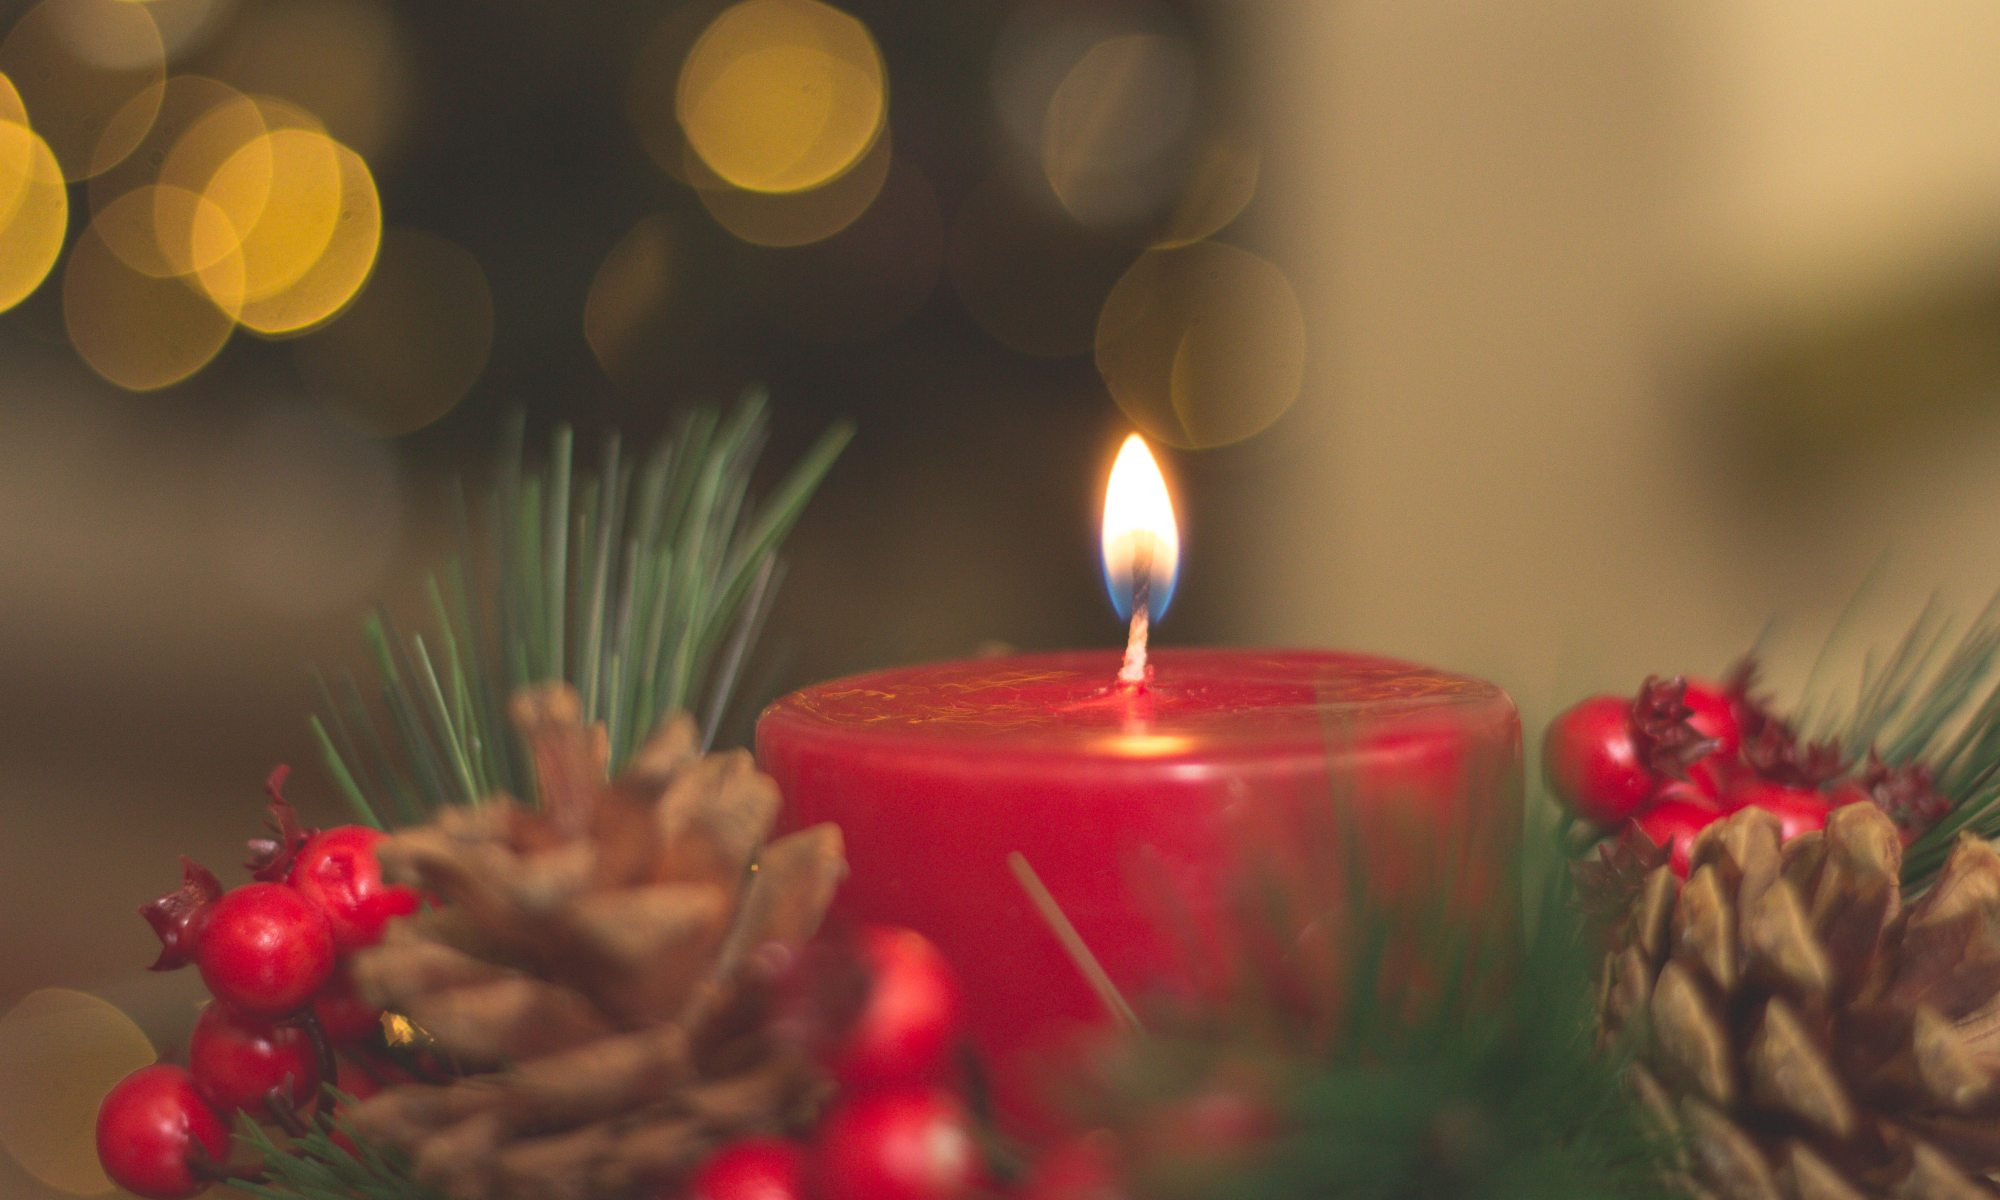 Red candle with holiday decorations